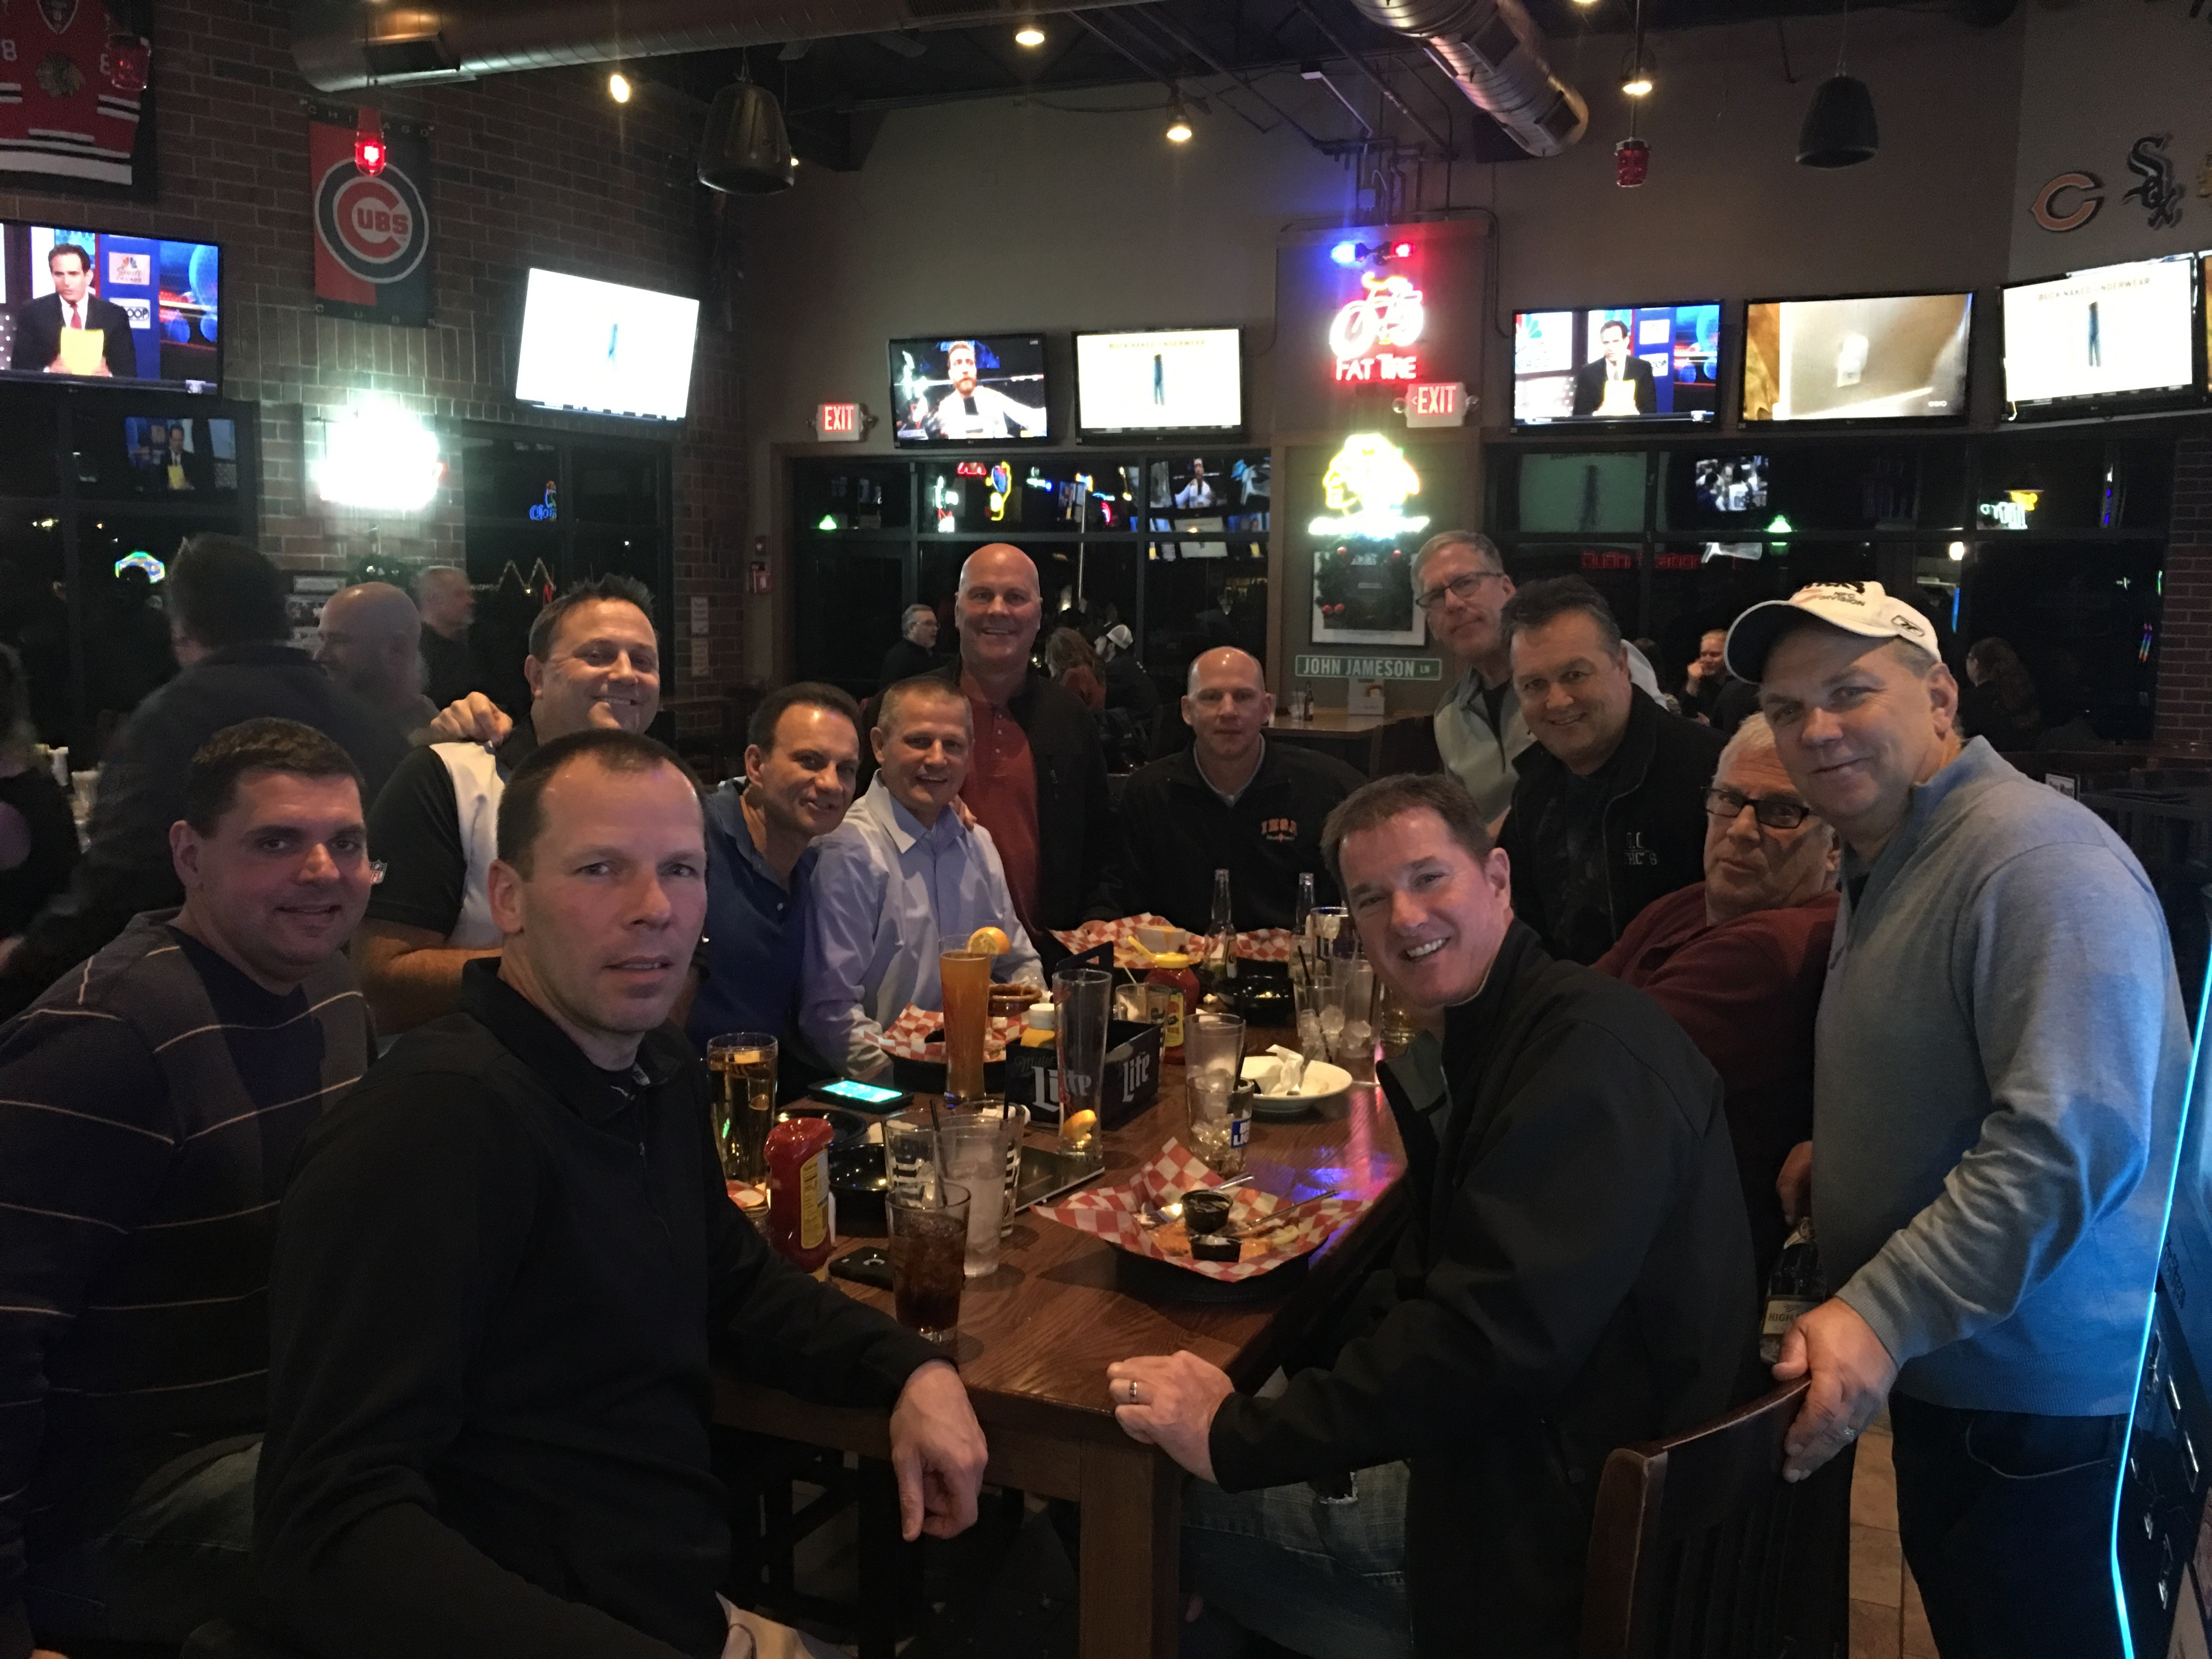 FVOA members at Rookies on Friday 12/1 after our games.